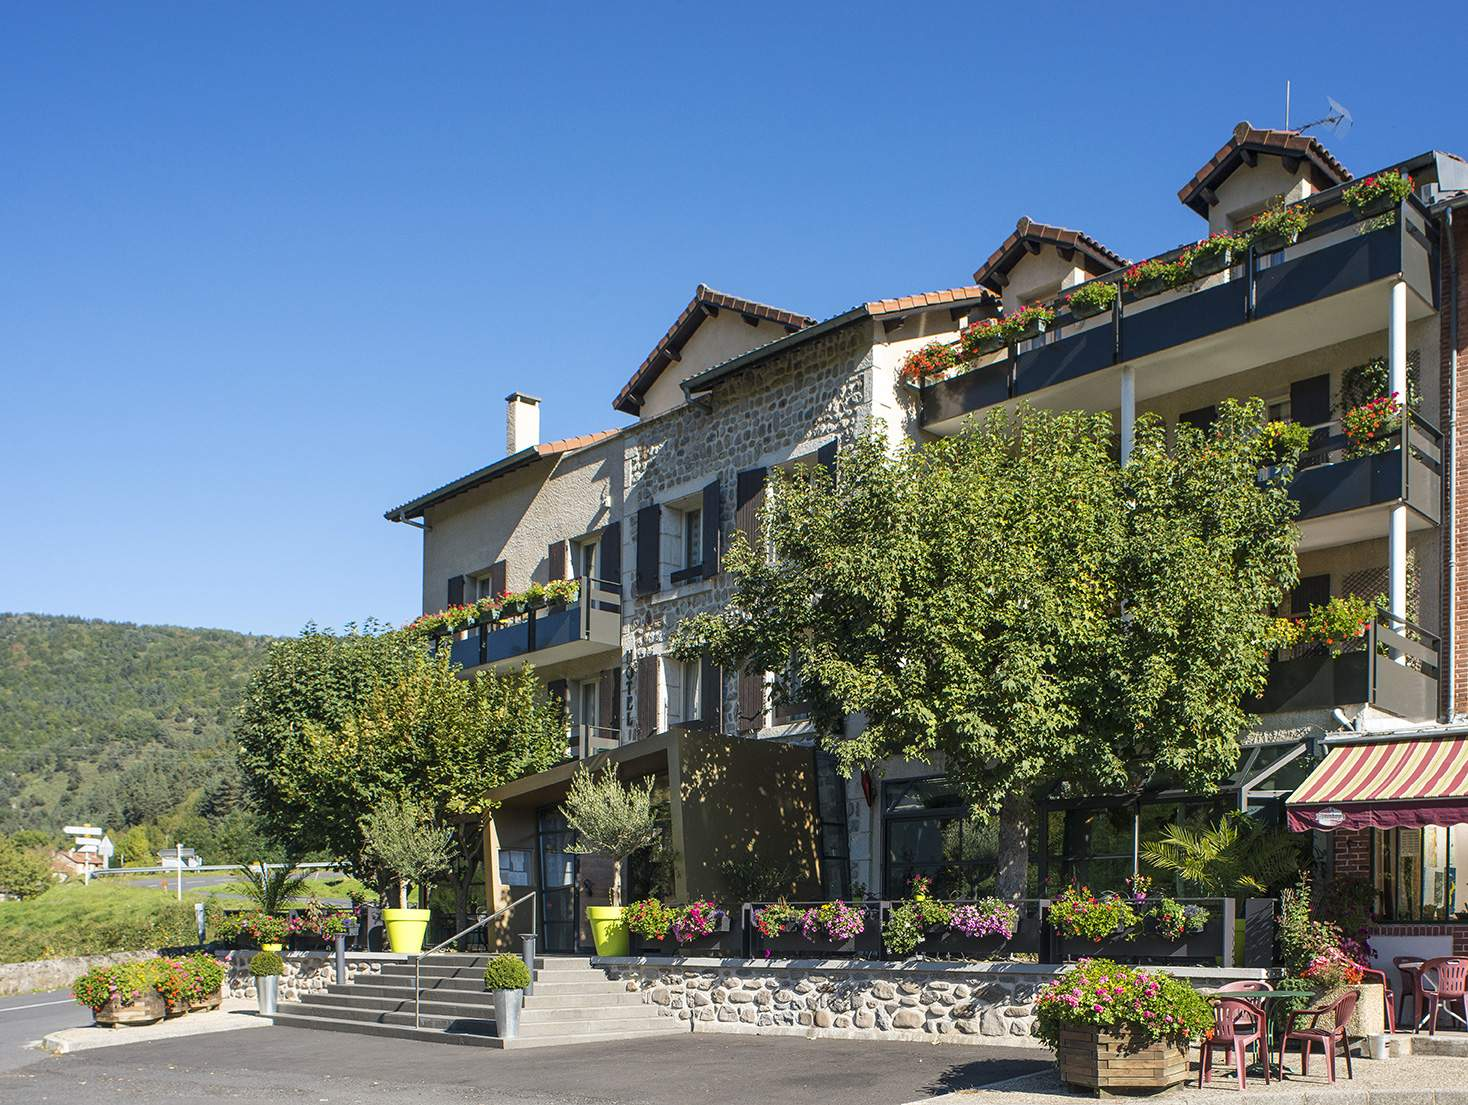 Outside view of the Le Haut Allier Hotel